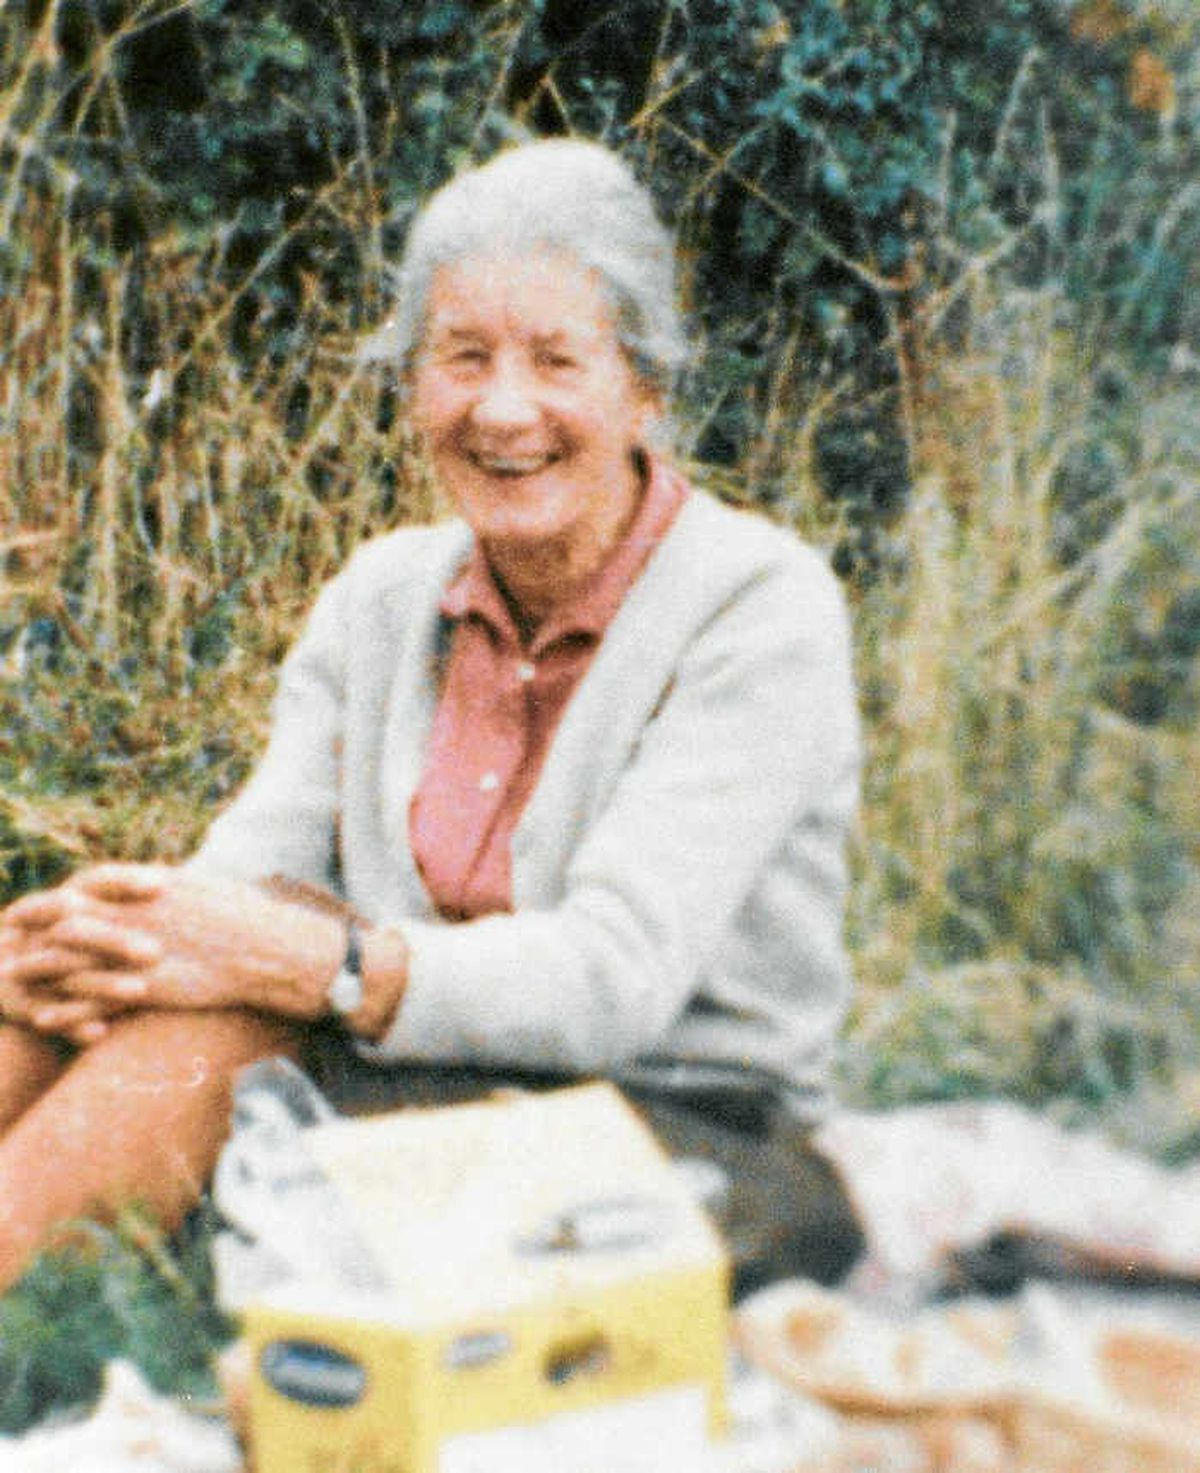 Hilda Murrell – mystery surrounds her death